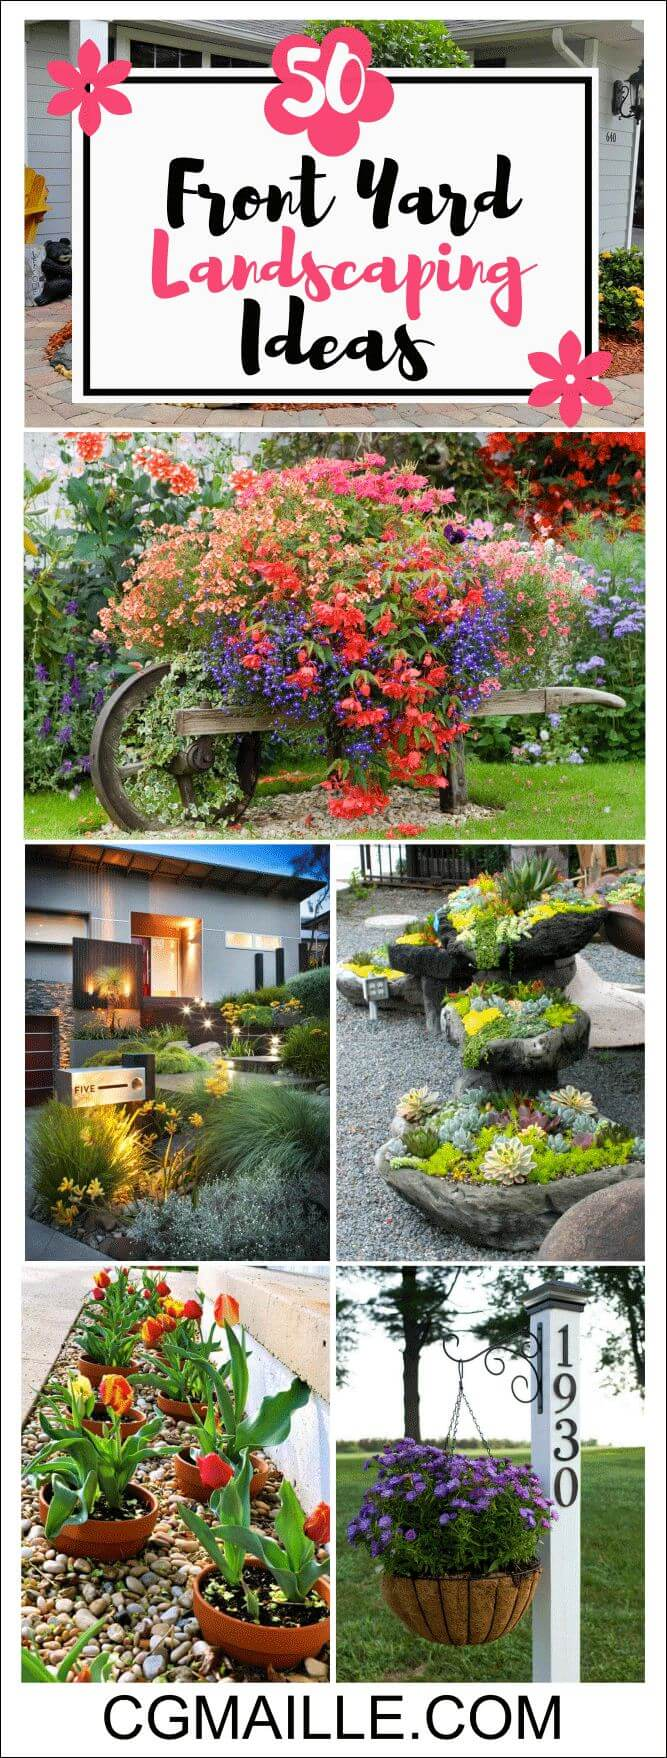 25+ Simple And Small Front Yard Landscaping Ideas (Low ... on Tiny Front Yard Ideas id=90251